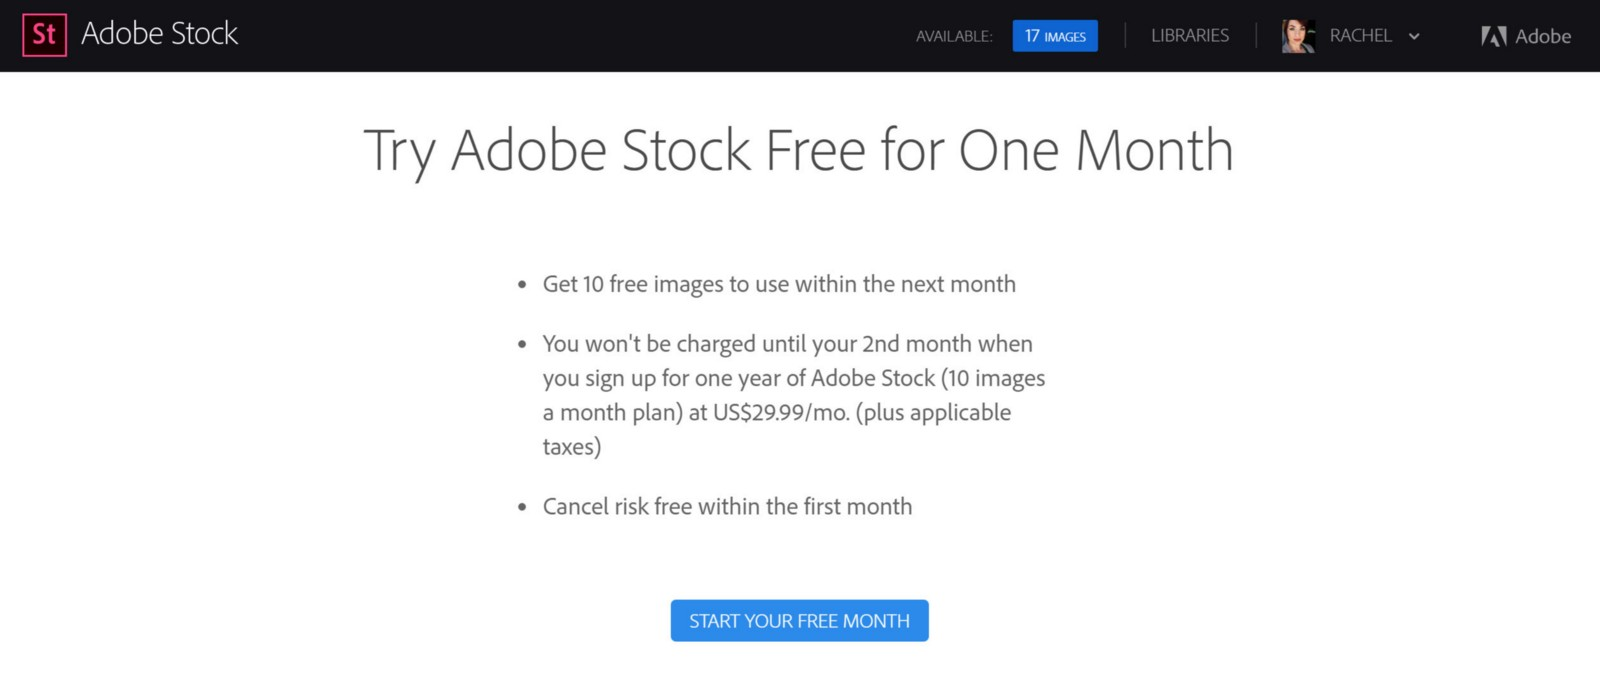 slammed with an adobe stock early cancellation fee on a risk free